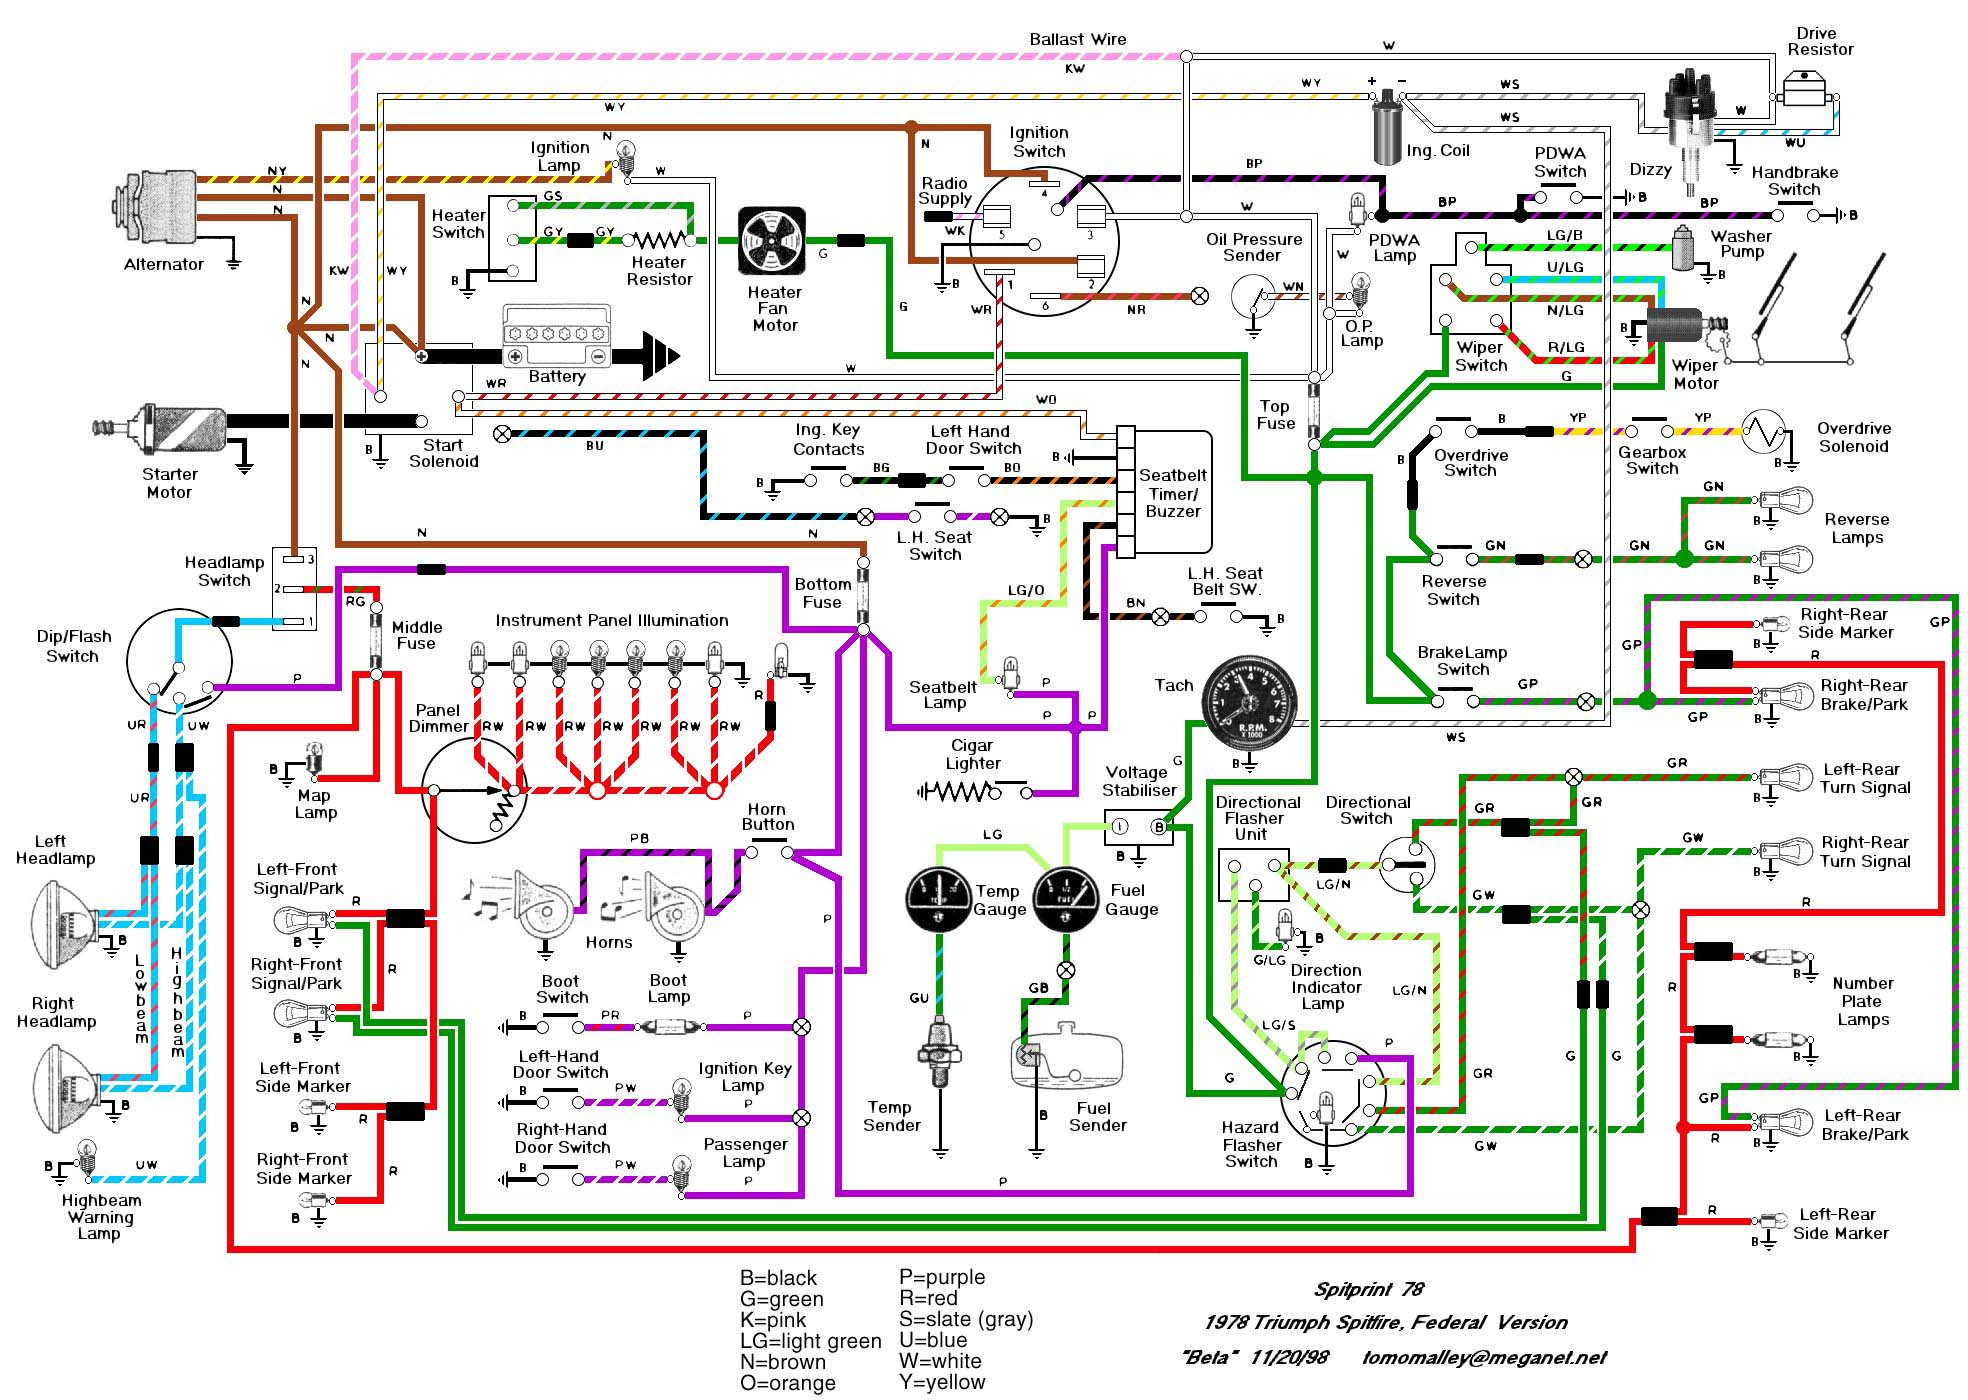 78diagram wiring schematics and diagrams triumph spitfire, gt6, herald Wiring Harness Wiring- Diagram at n-0.co